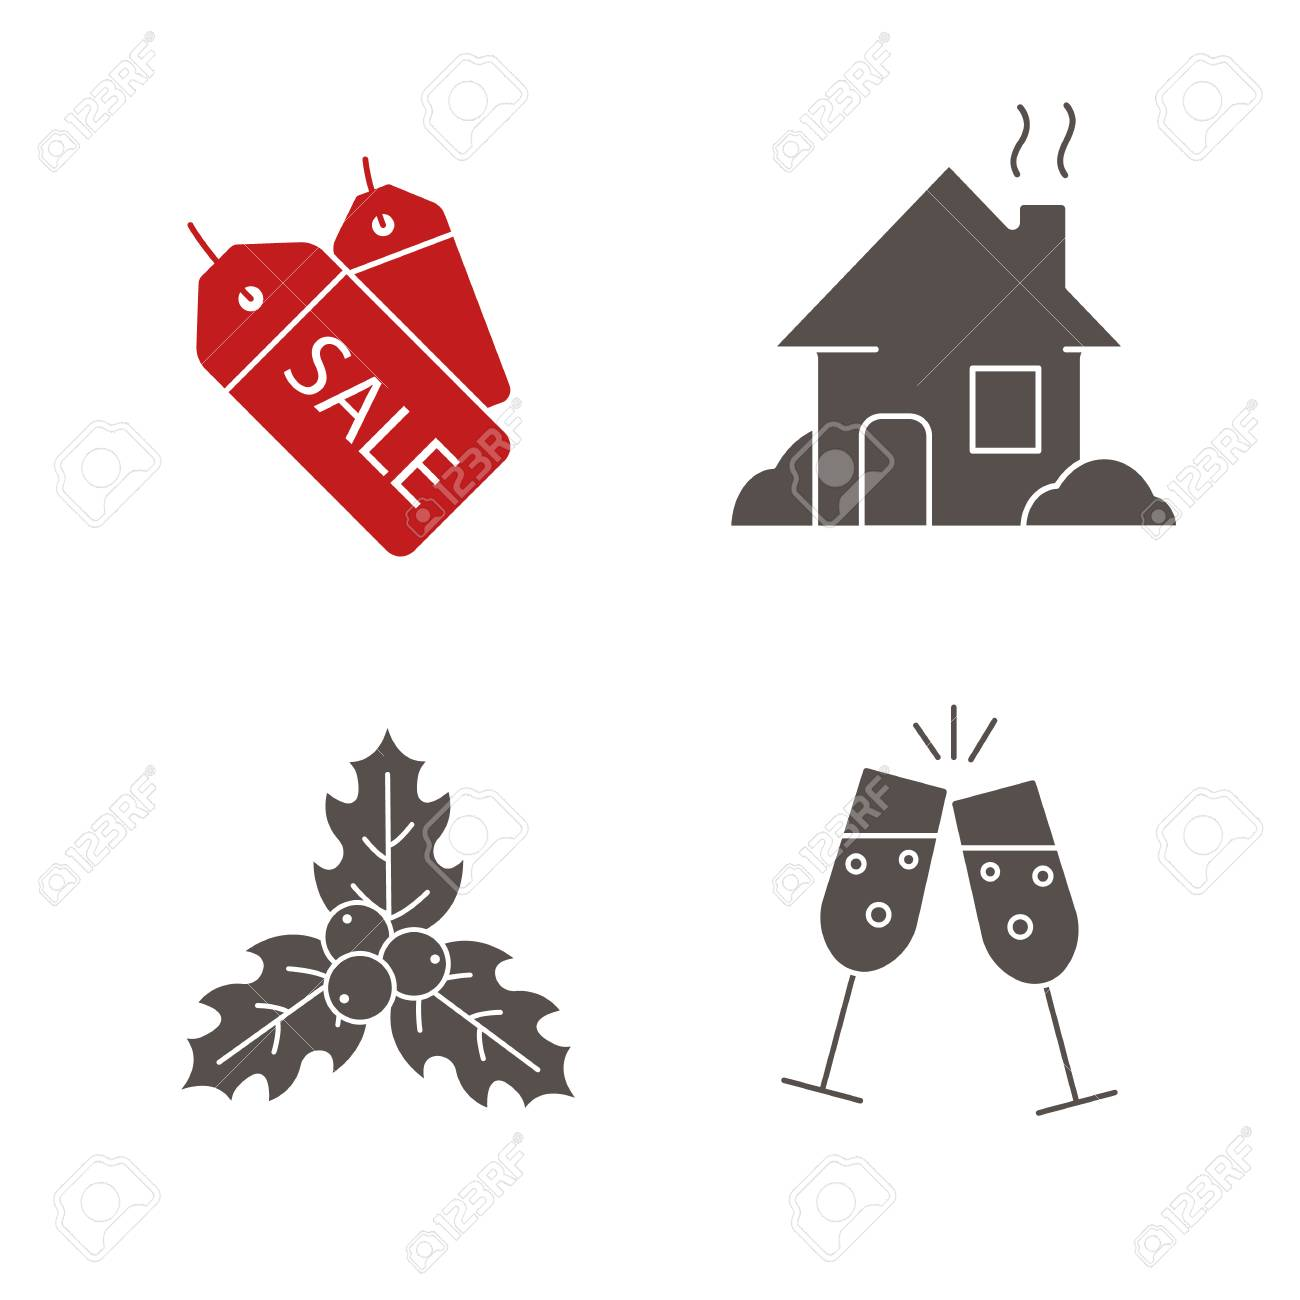 Christmas icons set new year silhouette symbols sale tags christmas icons set new year silhouette symbols sale tags house mistletoe buycottarizona Image collections